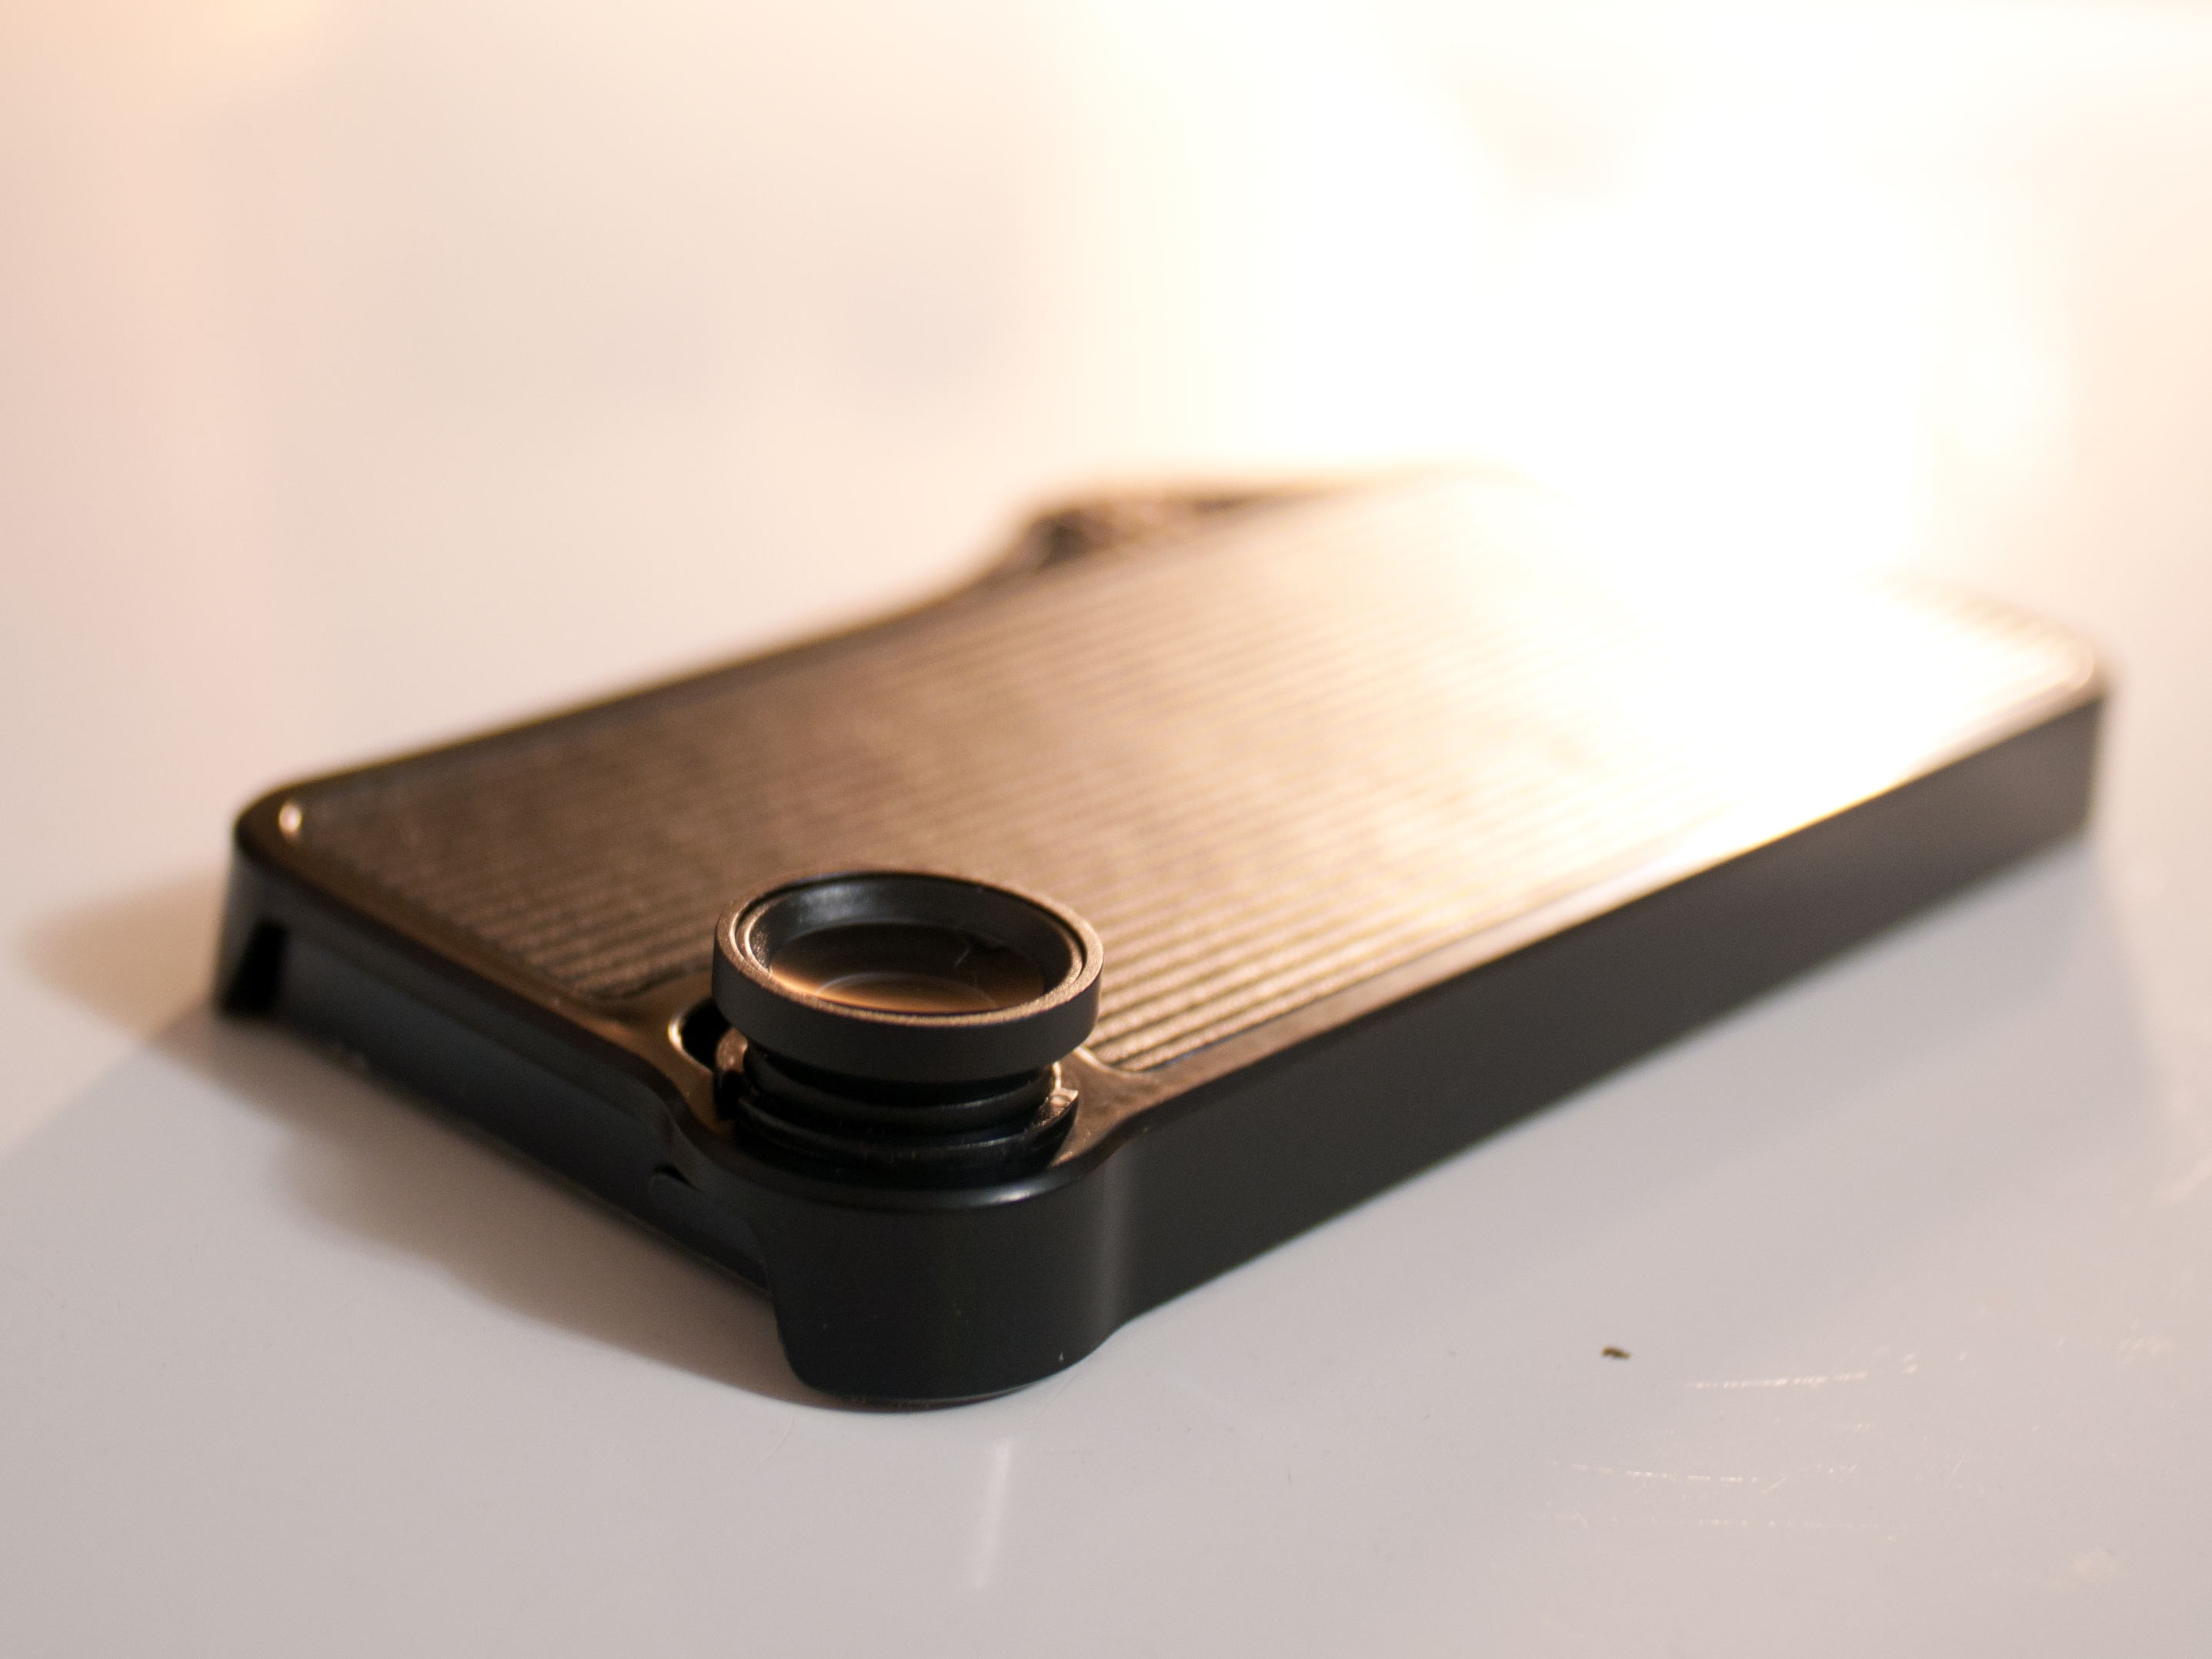 half off d7598 87085 Accessory review: PhoGo iPhone camera case and lenses: Digital ...